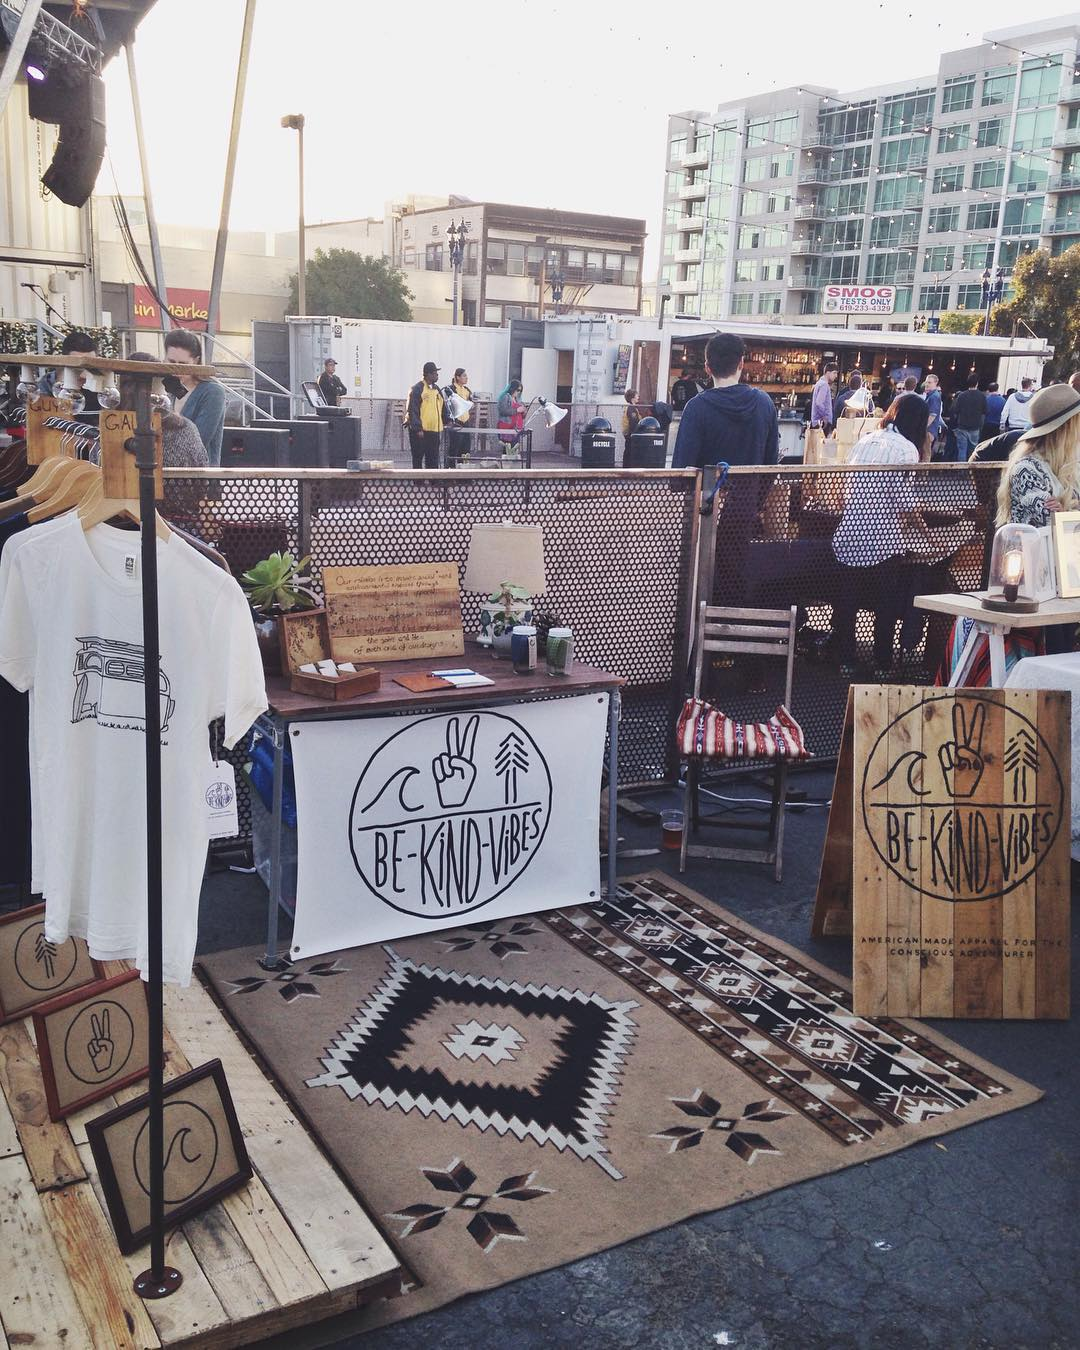 ~ Tribe Gathering ~  Swing by the Thursday night market at @quartyardsd tonight! We're set up until 10pm. Check out some other rad local makers and food trucks. Live music starts at 7pm. --------------------------------- #bekindvibes #bekindtribe...